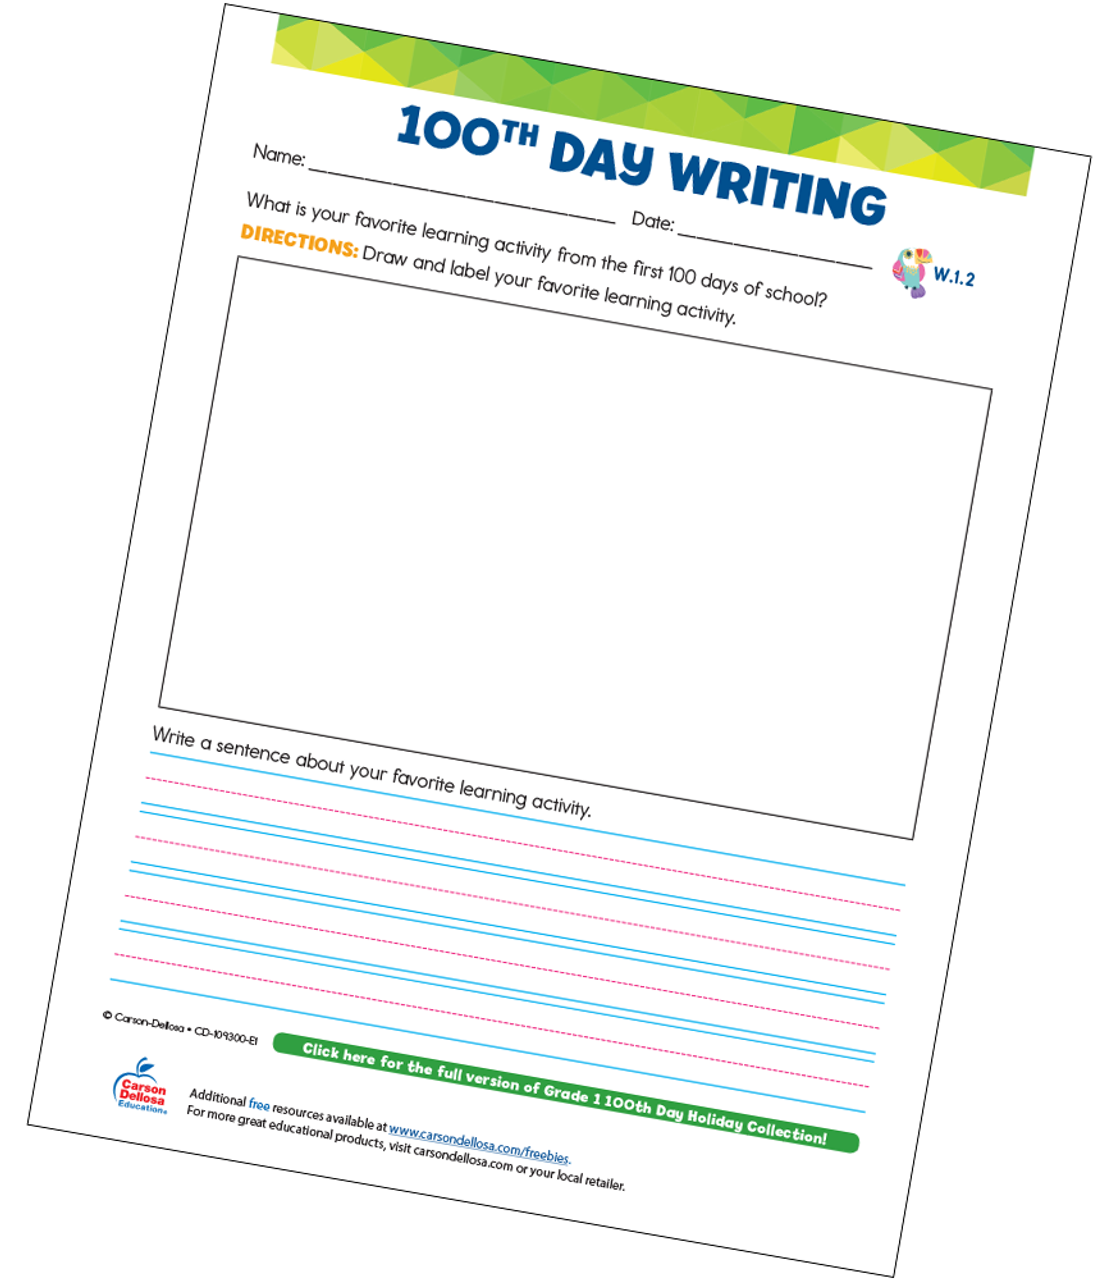 photograph regarding Free Printable Writing Prompts known as 100th Working day Creating Instructed Quality 1 Absolutely free Printable Carson Dellosa